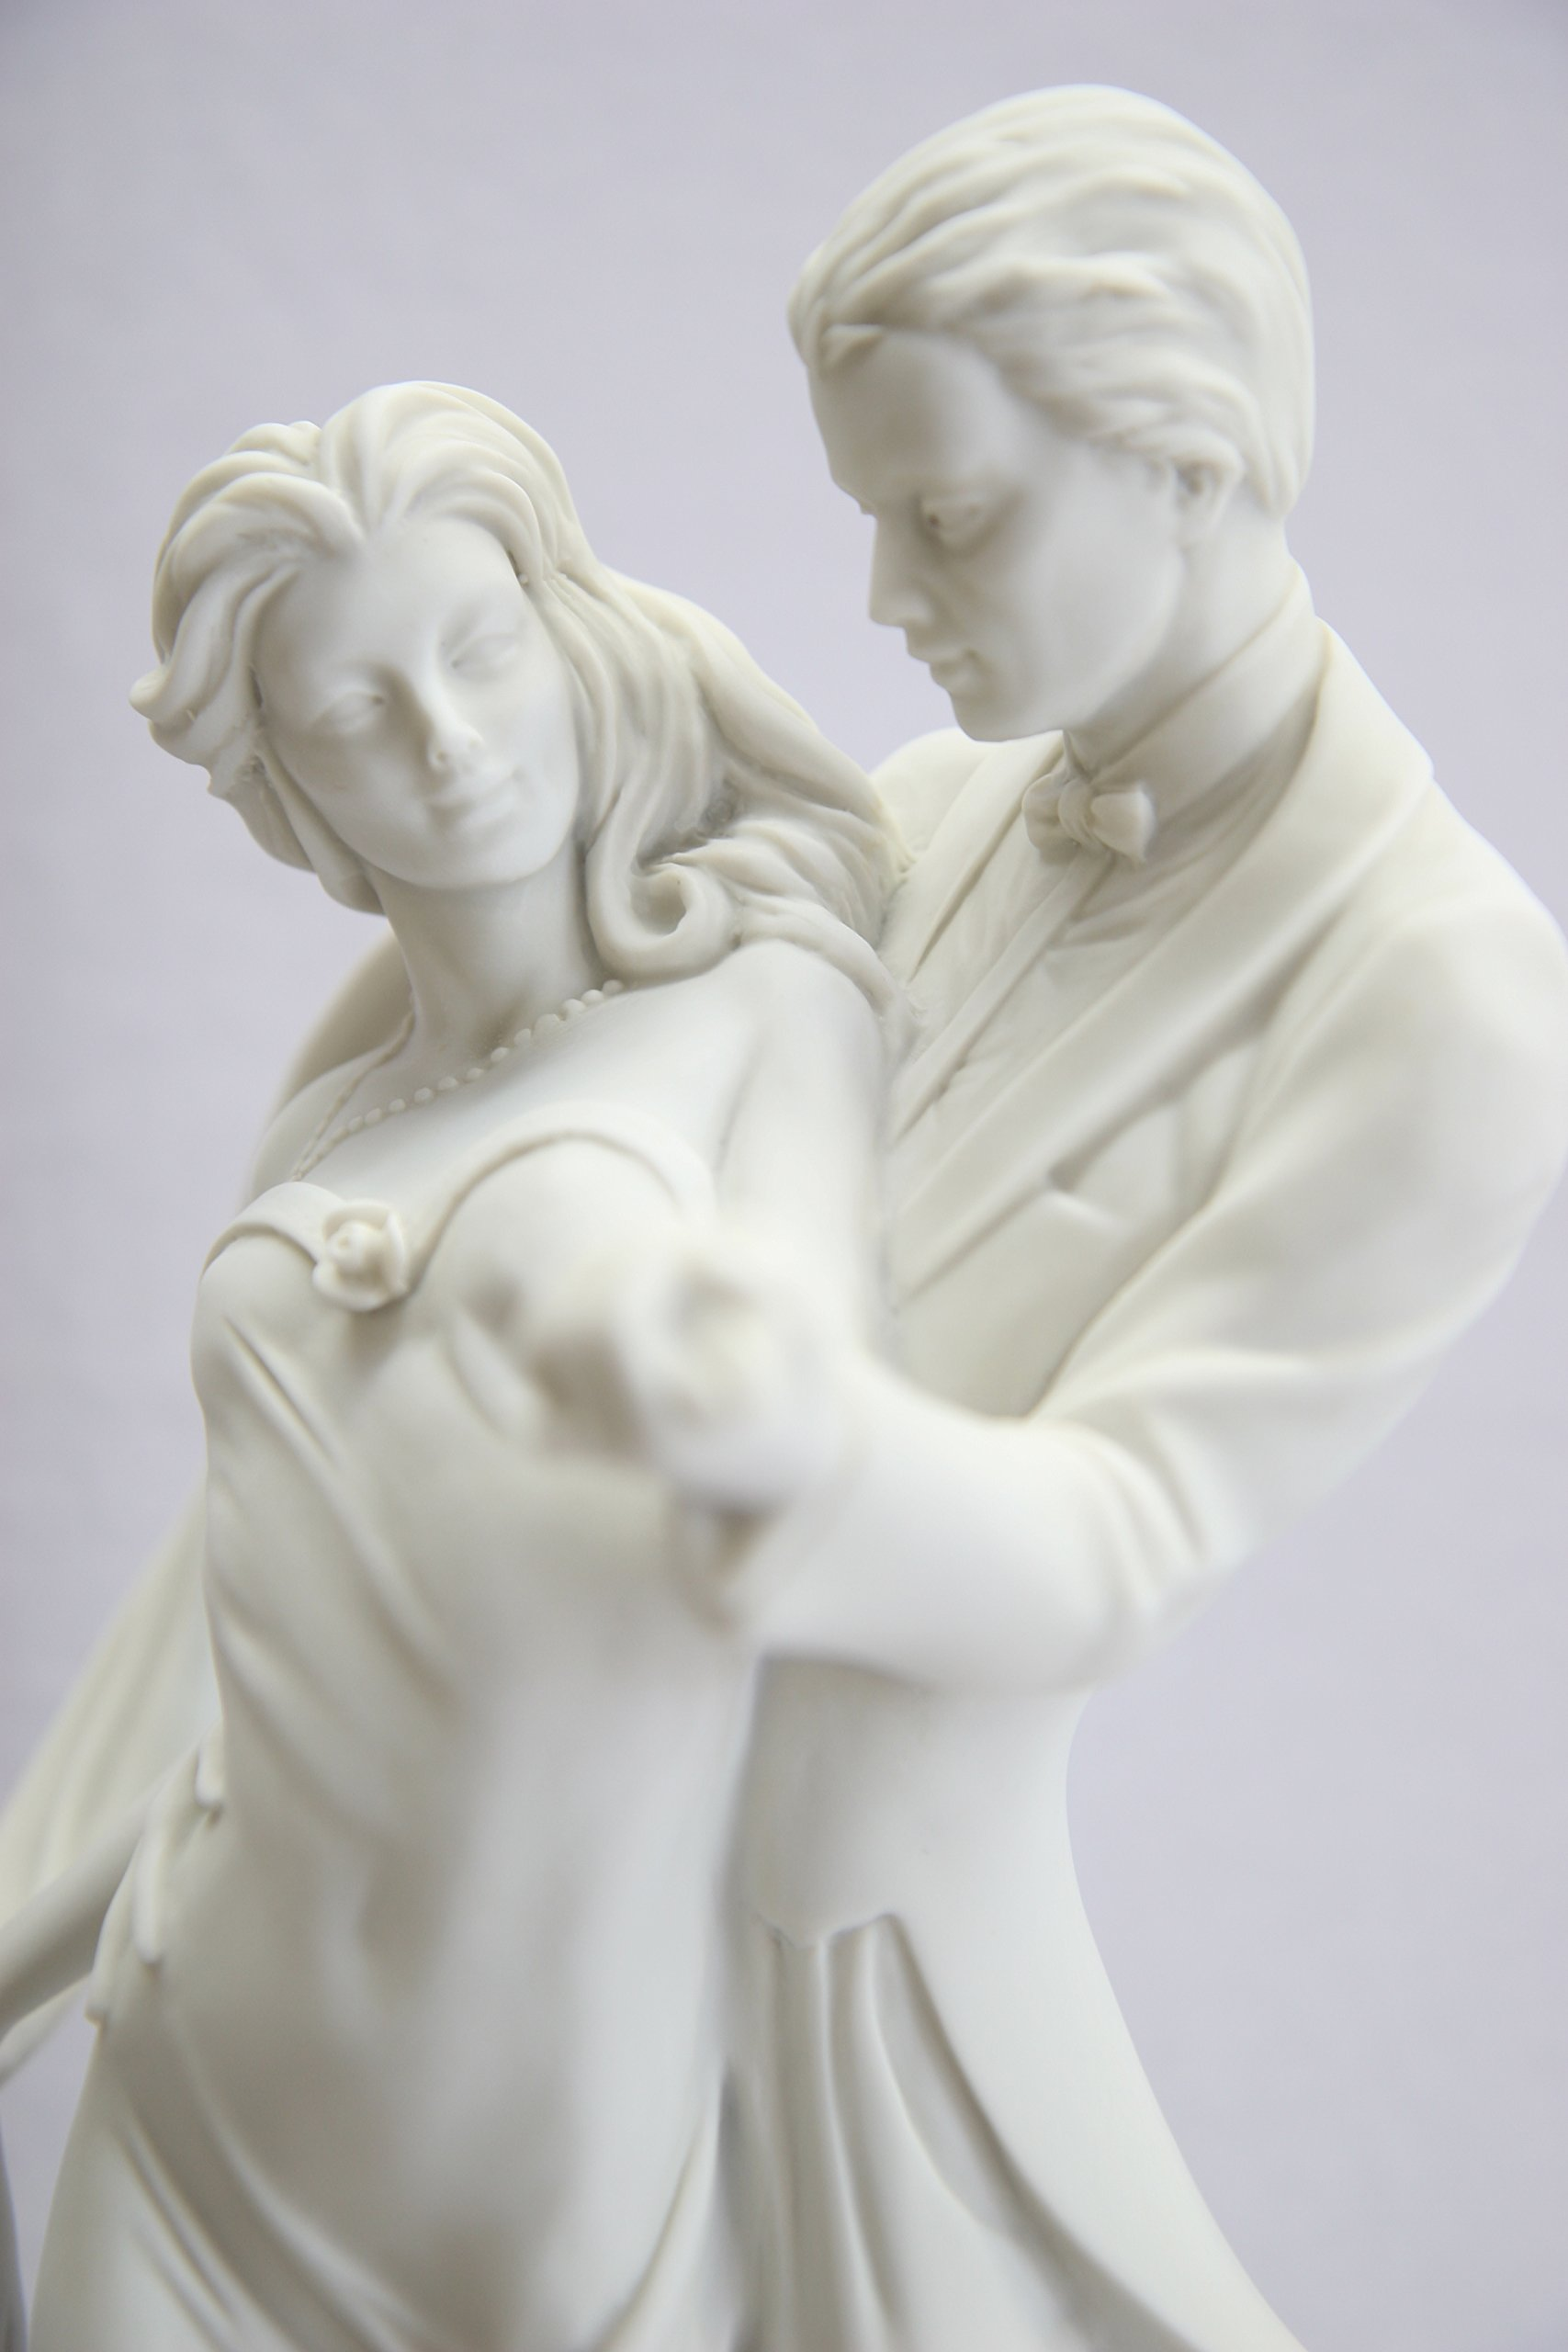 15.5'' Romantic Couple of Dancer Dance Statue Sculpture Figurine By Vittoria Collection Made in Italy by Vittoria Collection (Image #5)